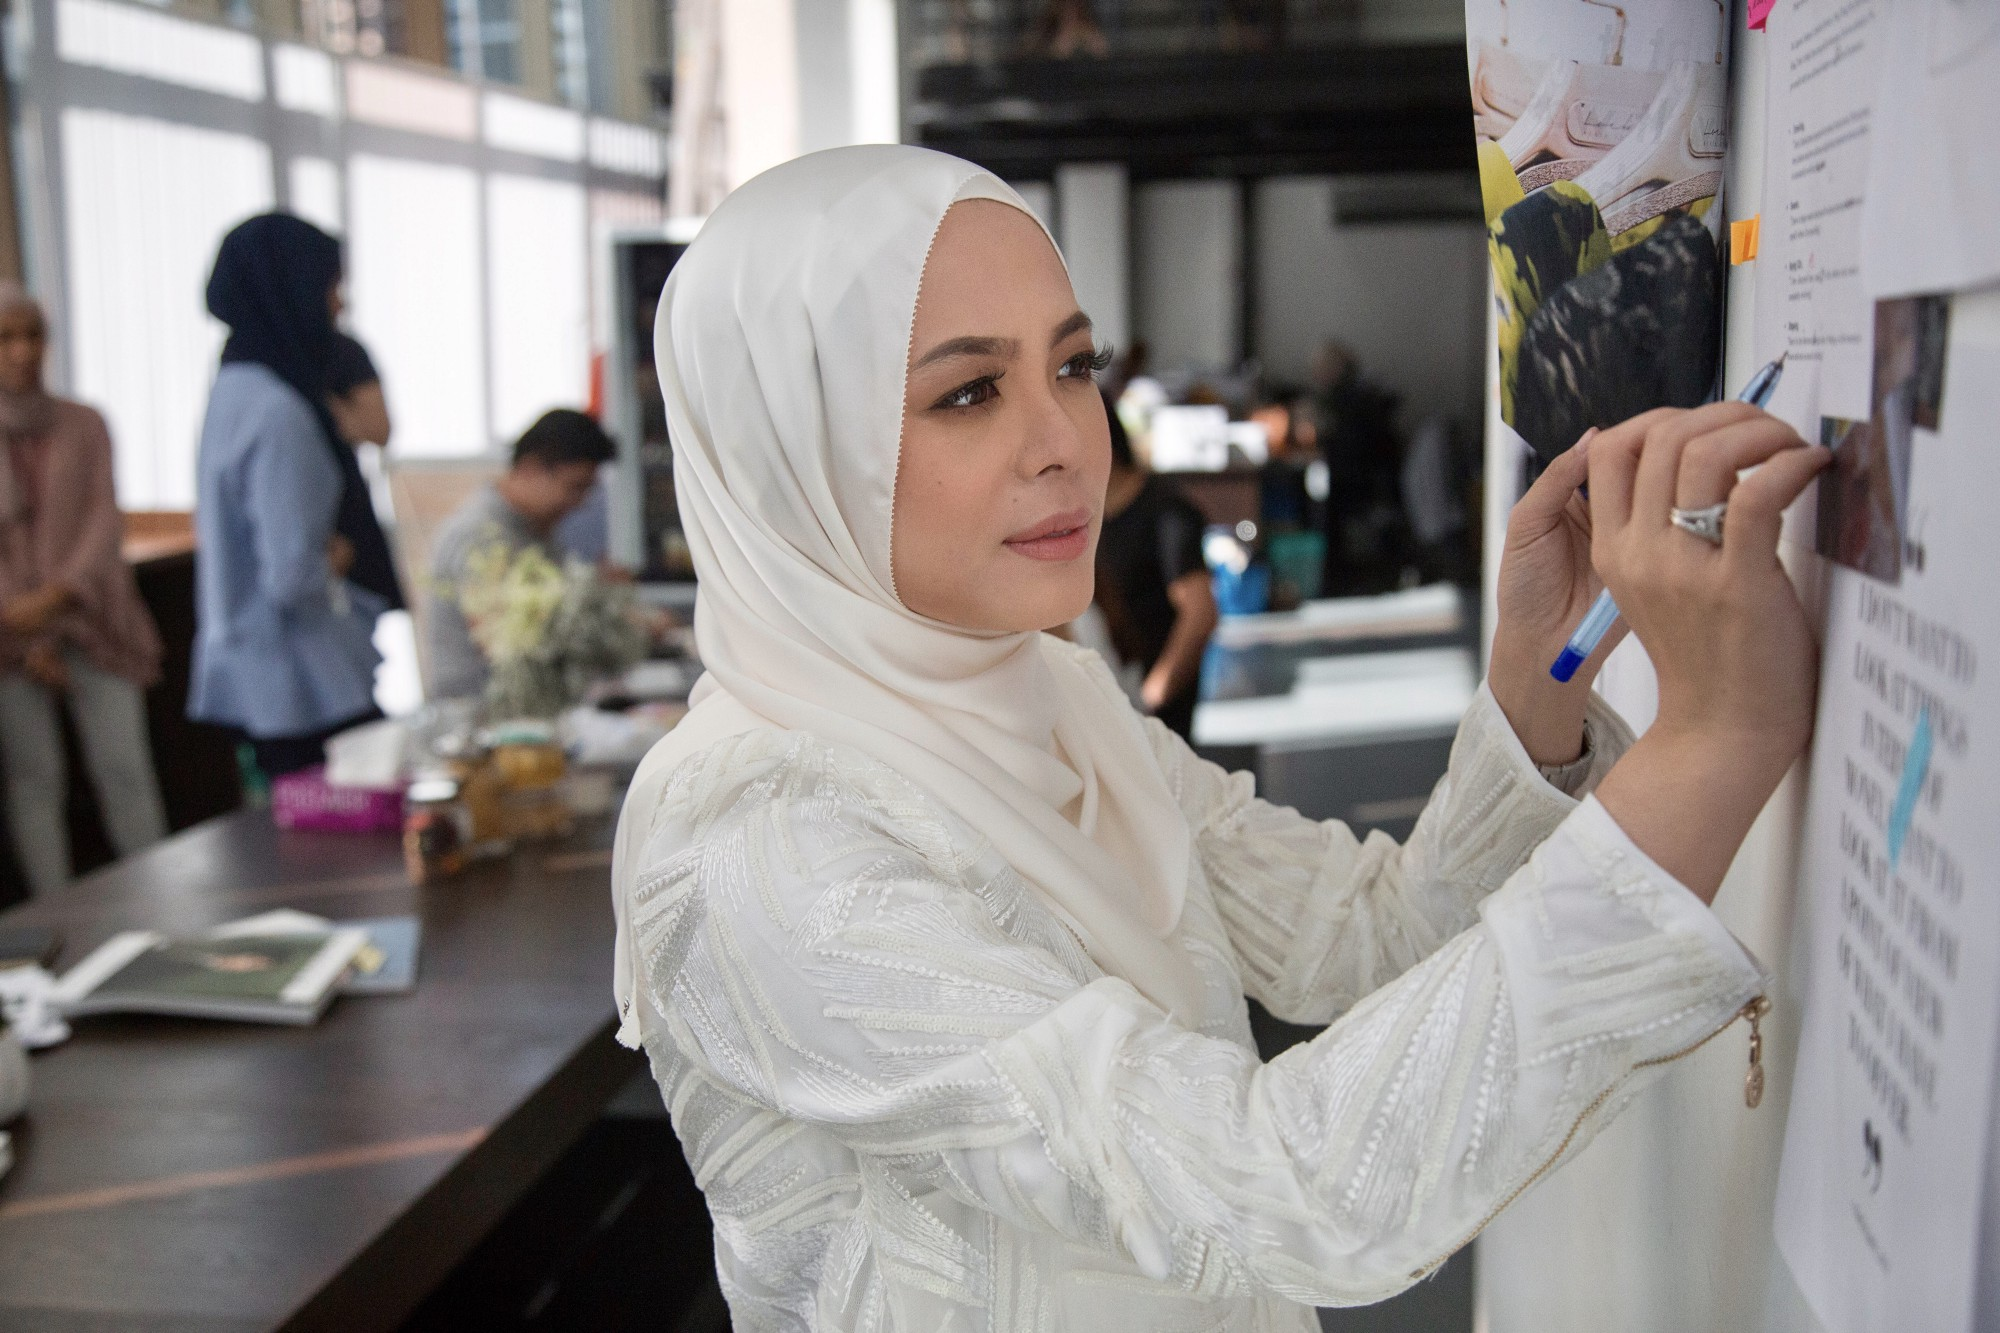 faces of impact vivy yusof � endeavor � medium